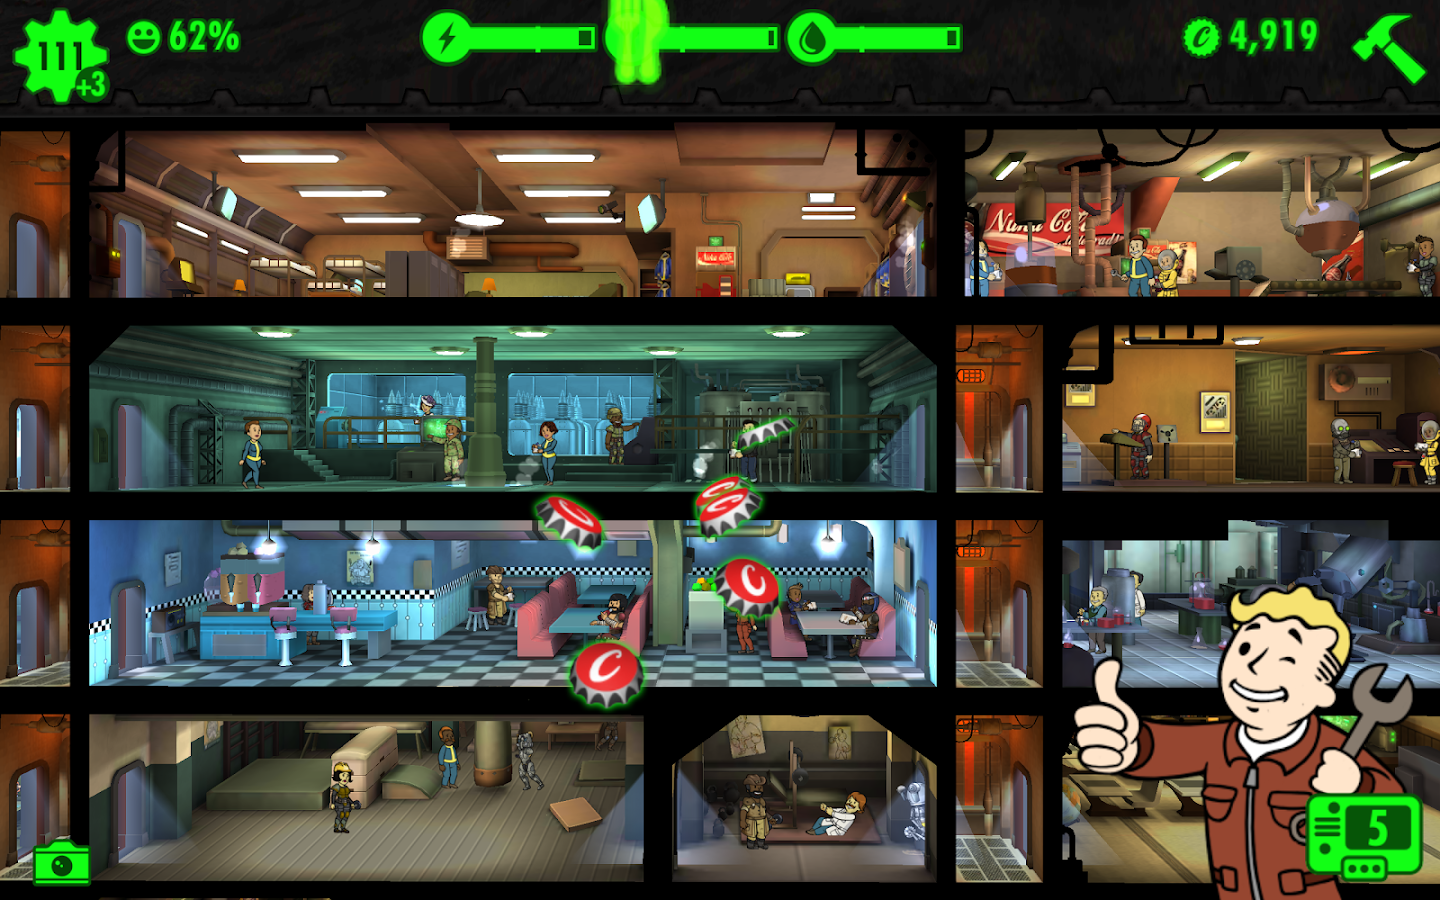 Fallout shelter play now - 8b2d1